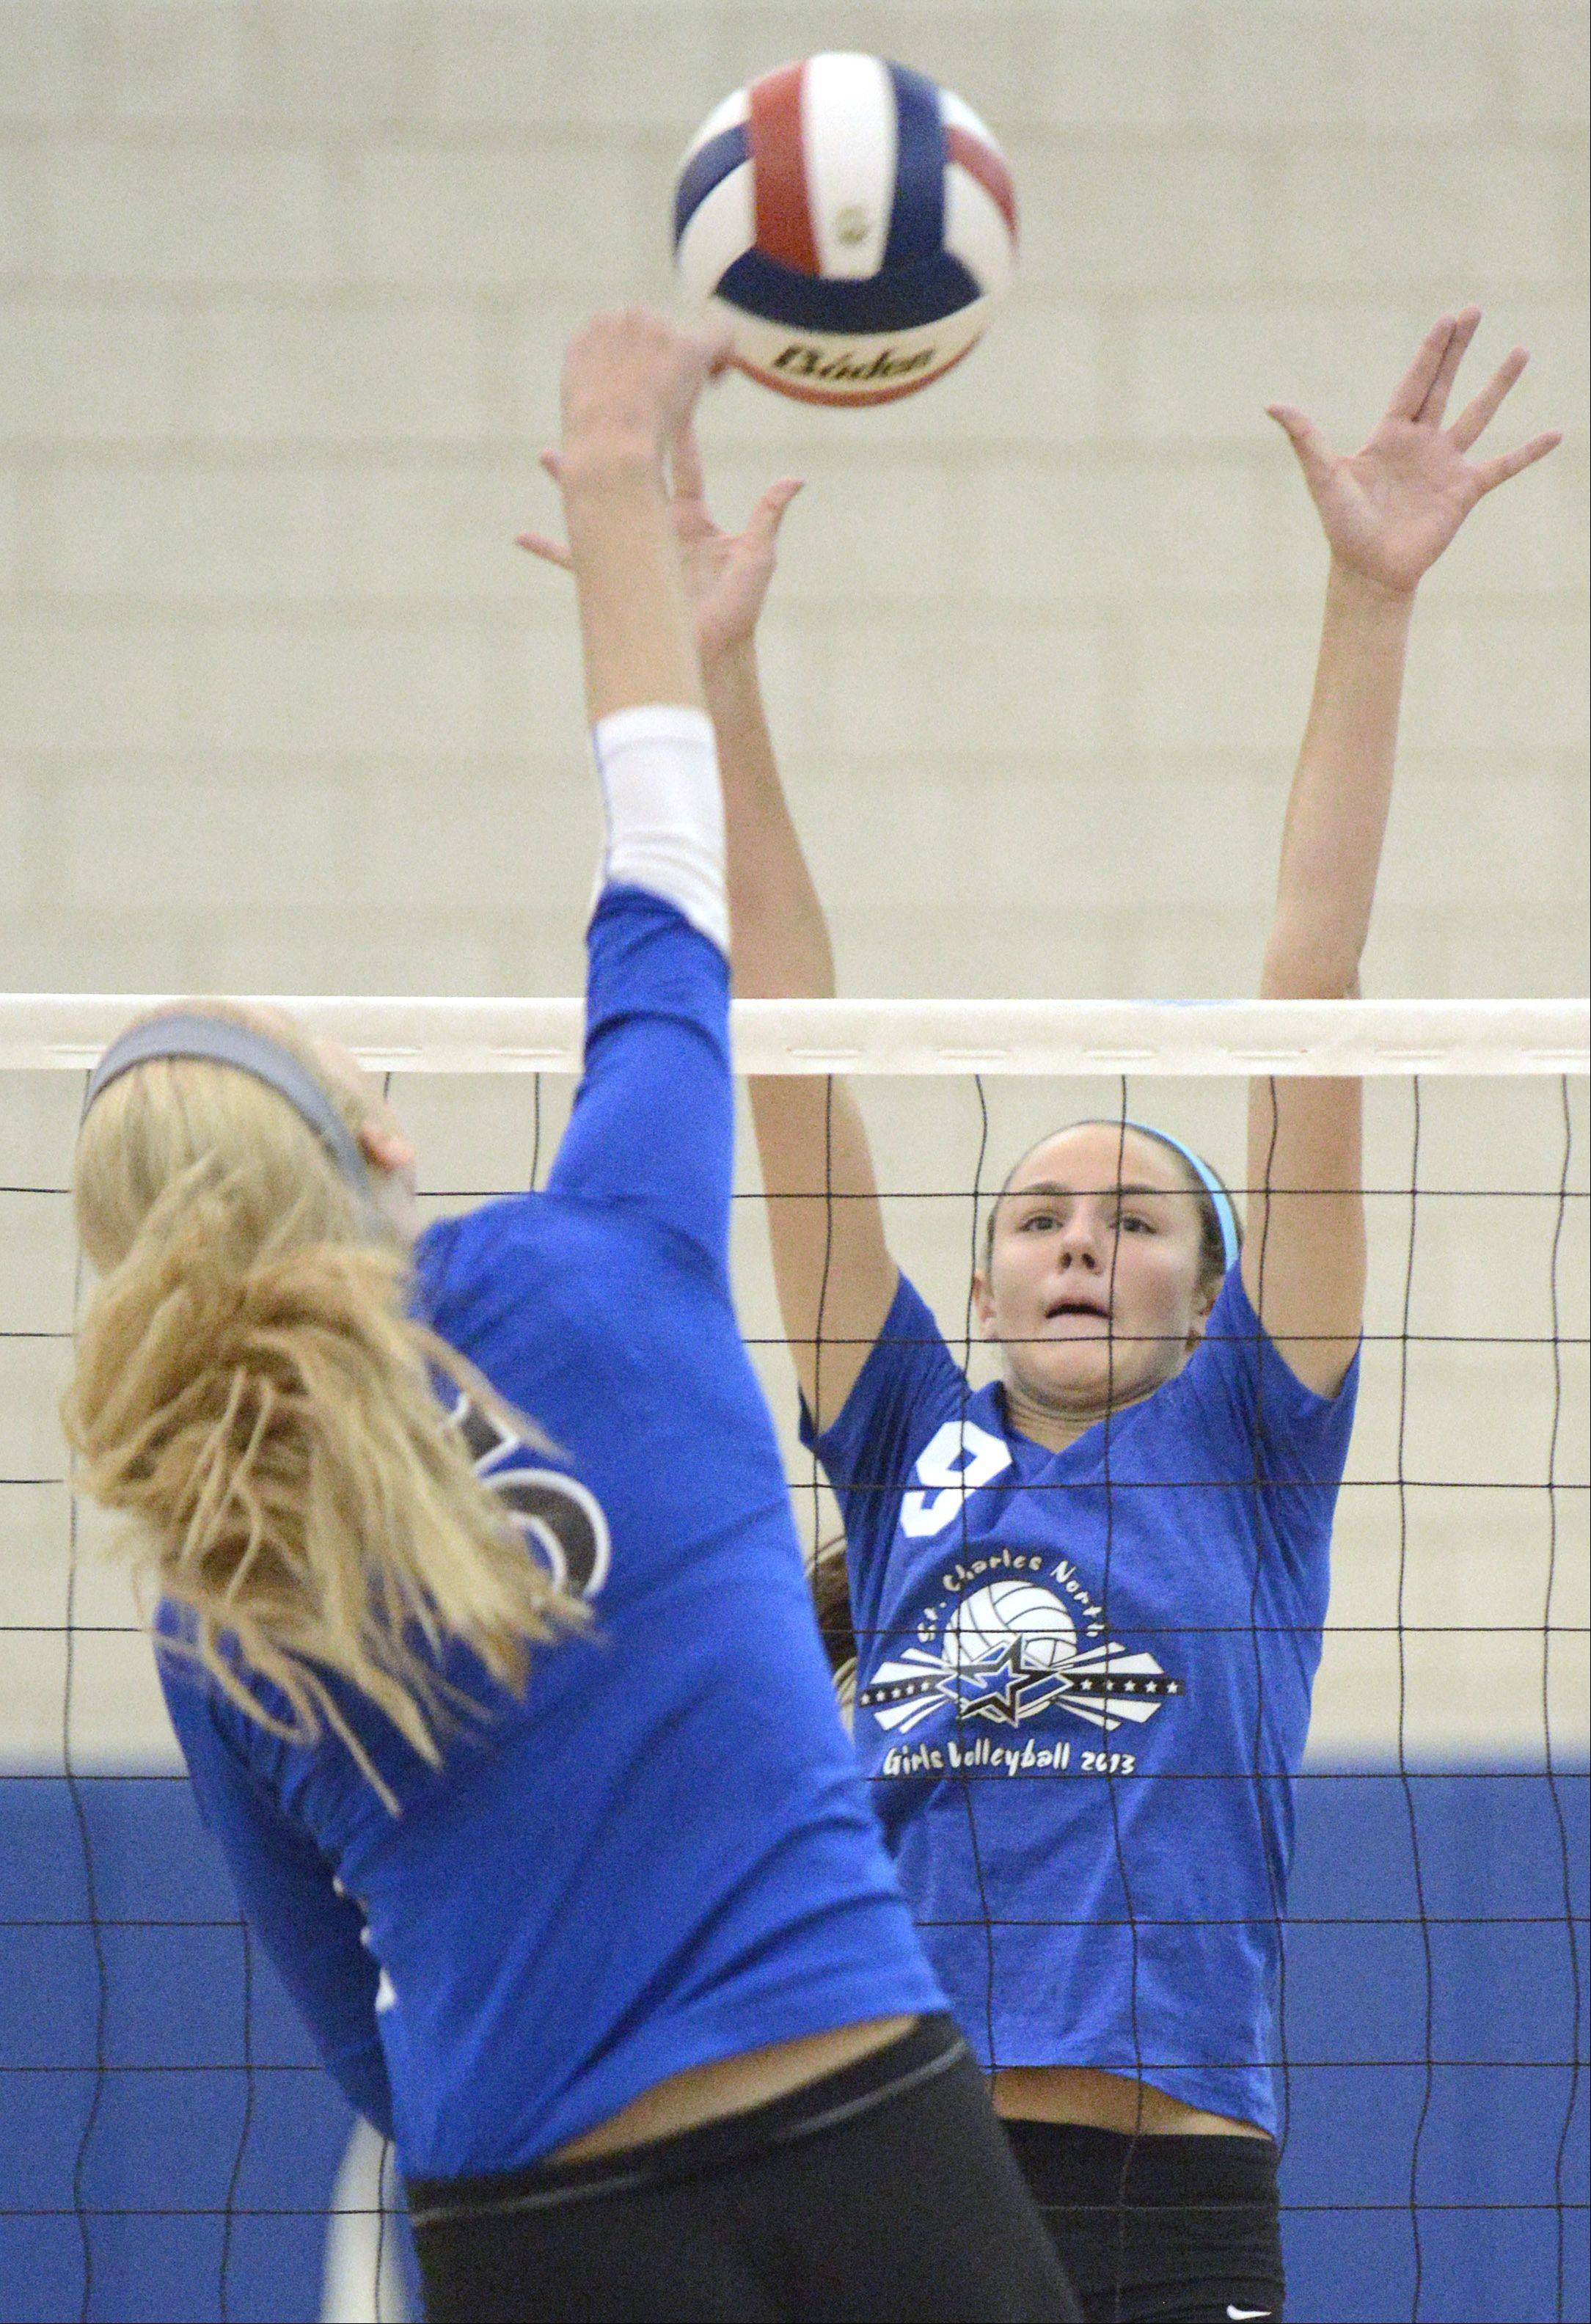 St. Charles North's Jaclyn Taylor attempts to block a spike by Geneva's Kyley Thompson in the second match on Tuesday, September 24.